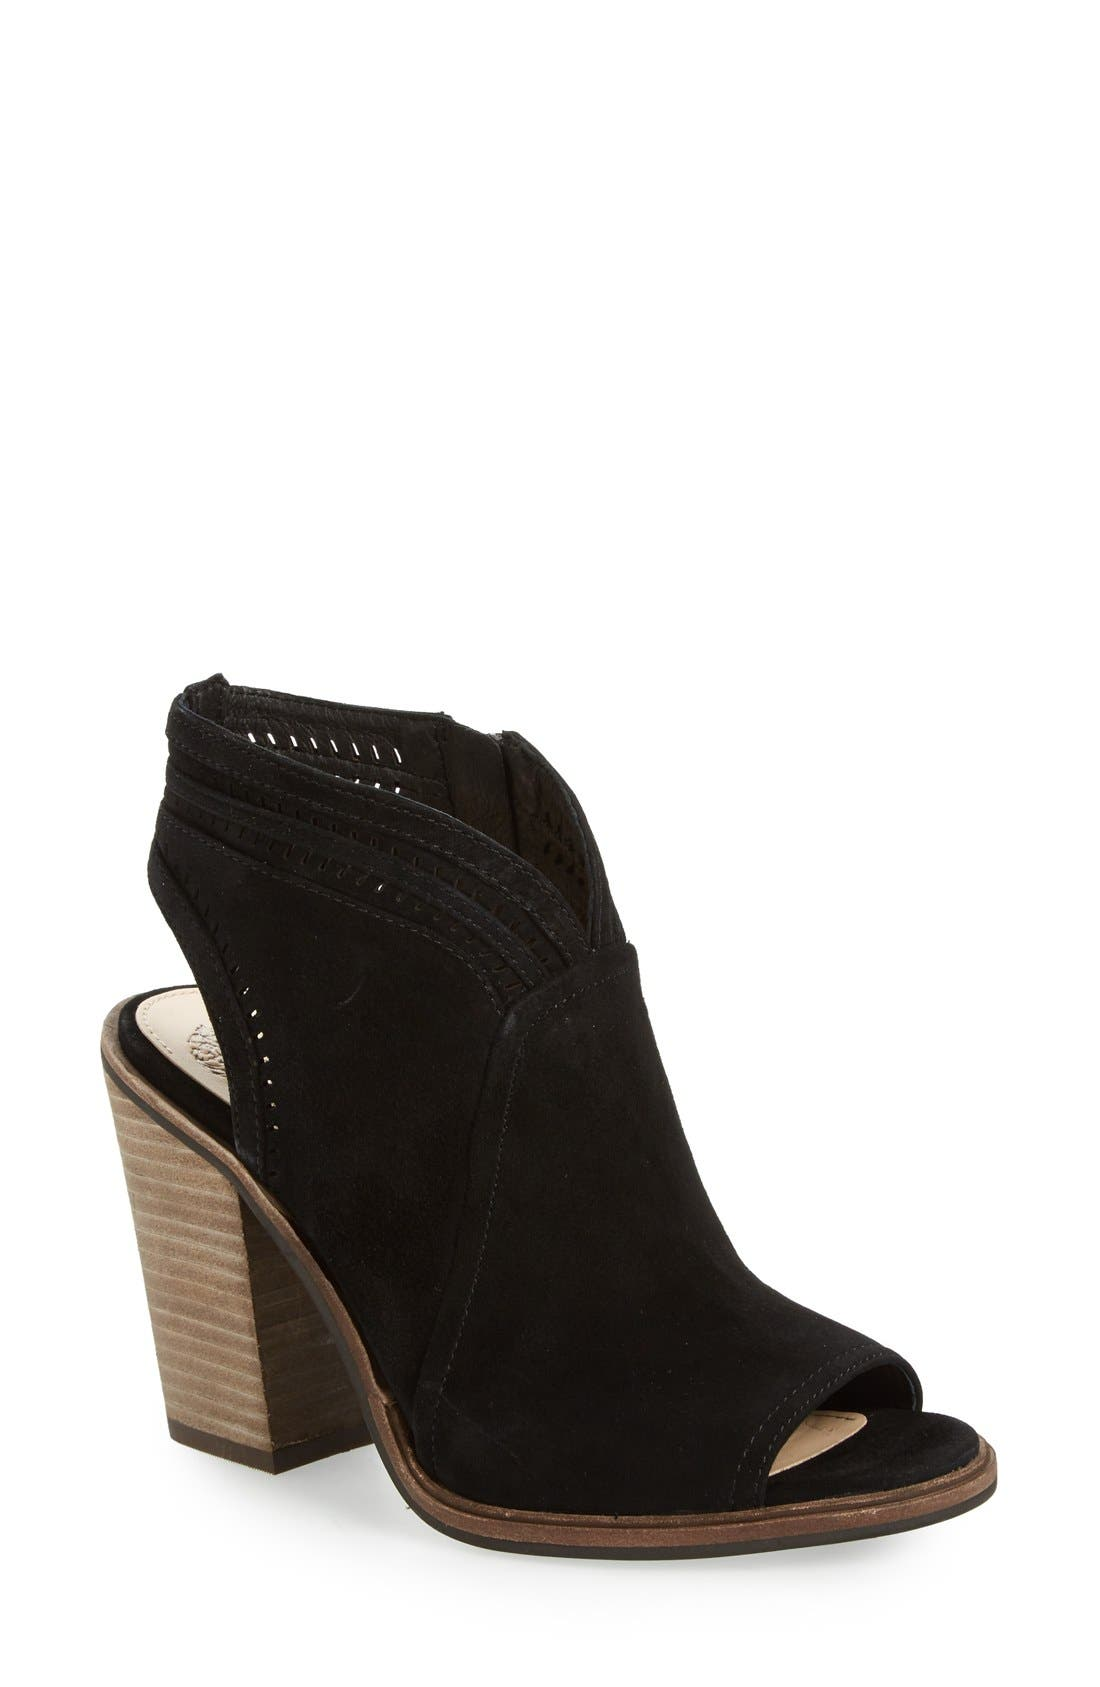 'Koral' Perforated Open Toe Bootie, Main, color, 001